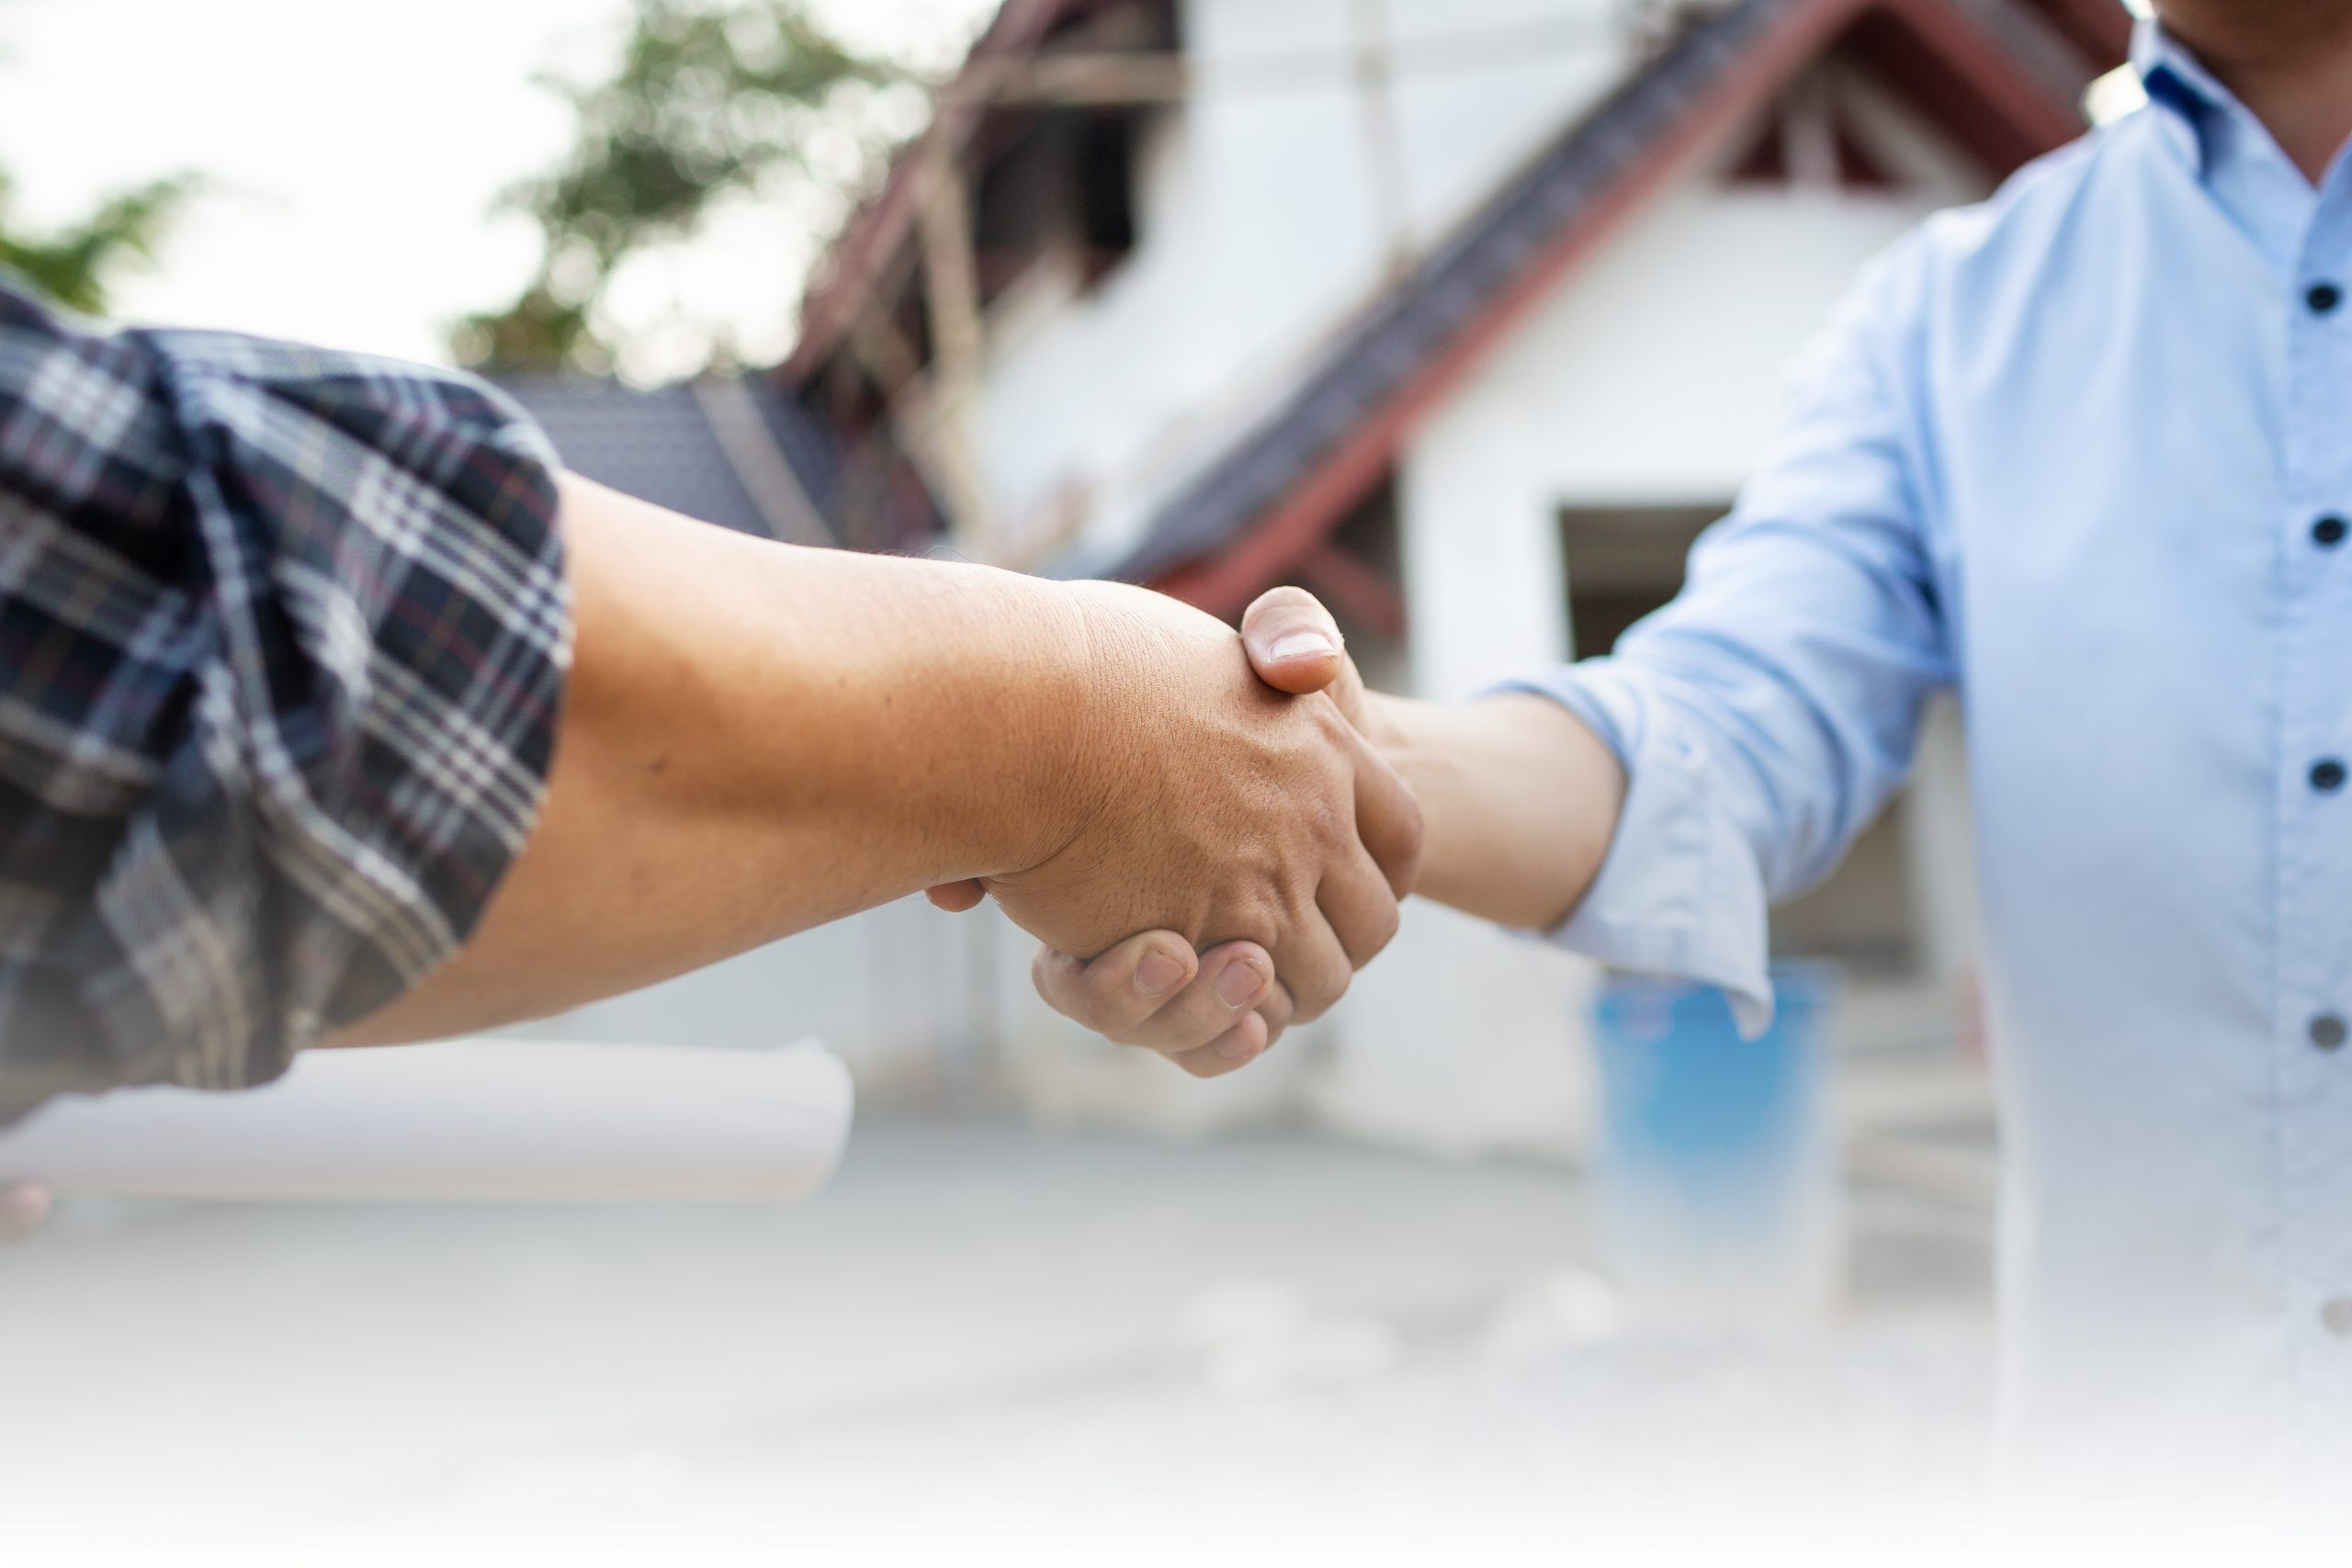 shaking hands at remodeling site